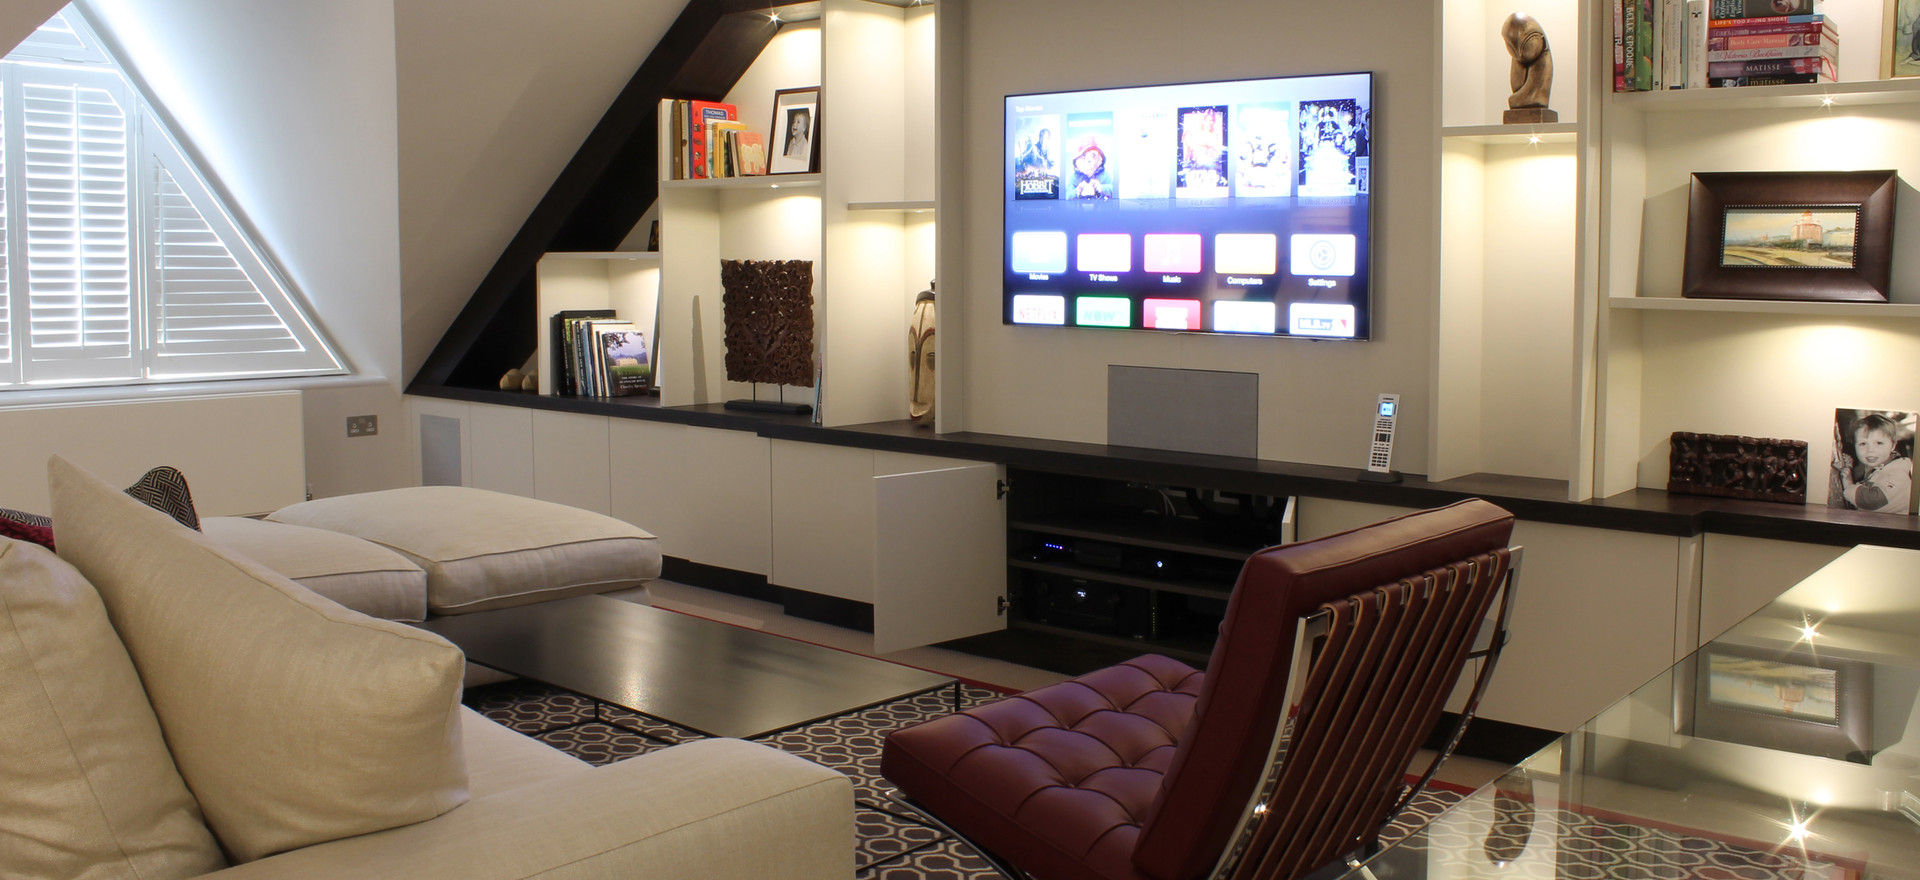 Television View with Lutron Lighting